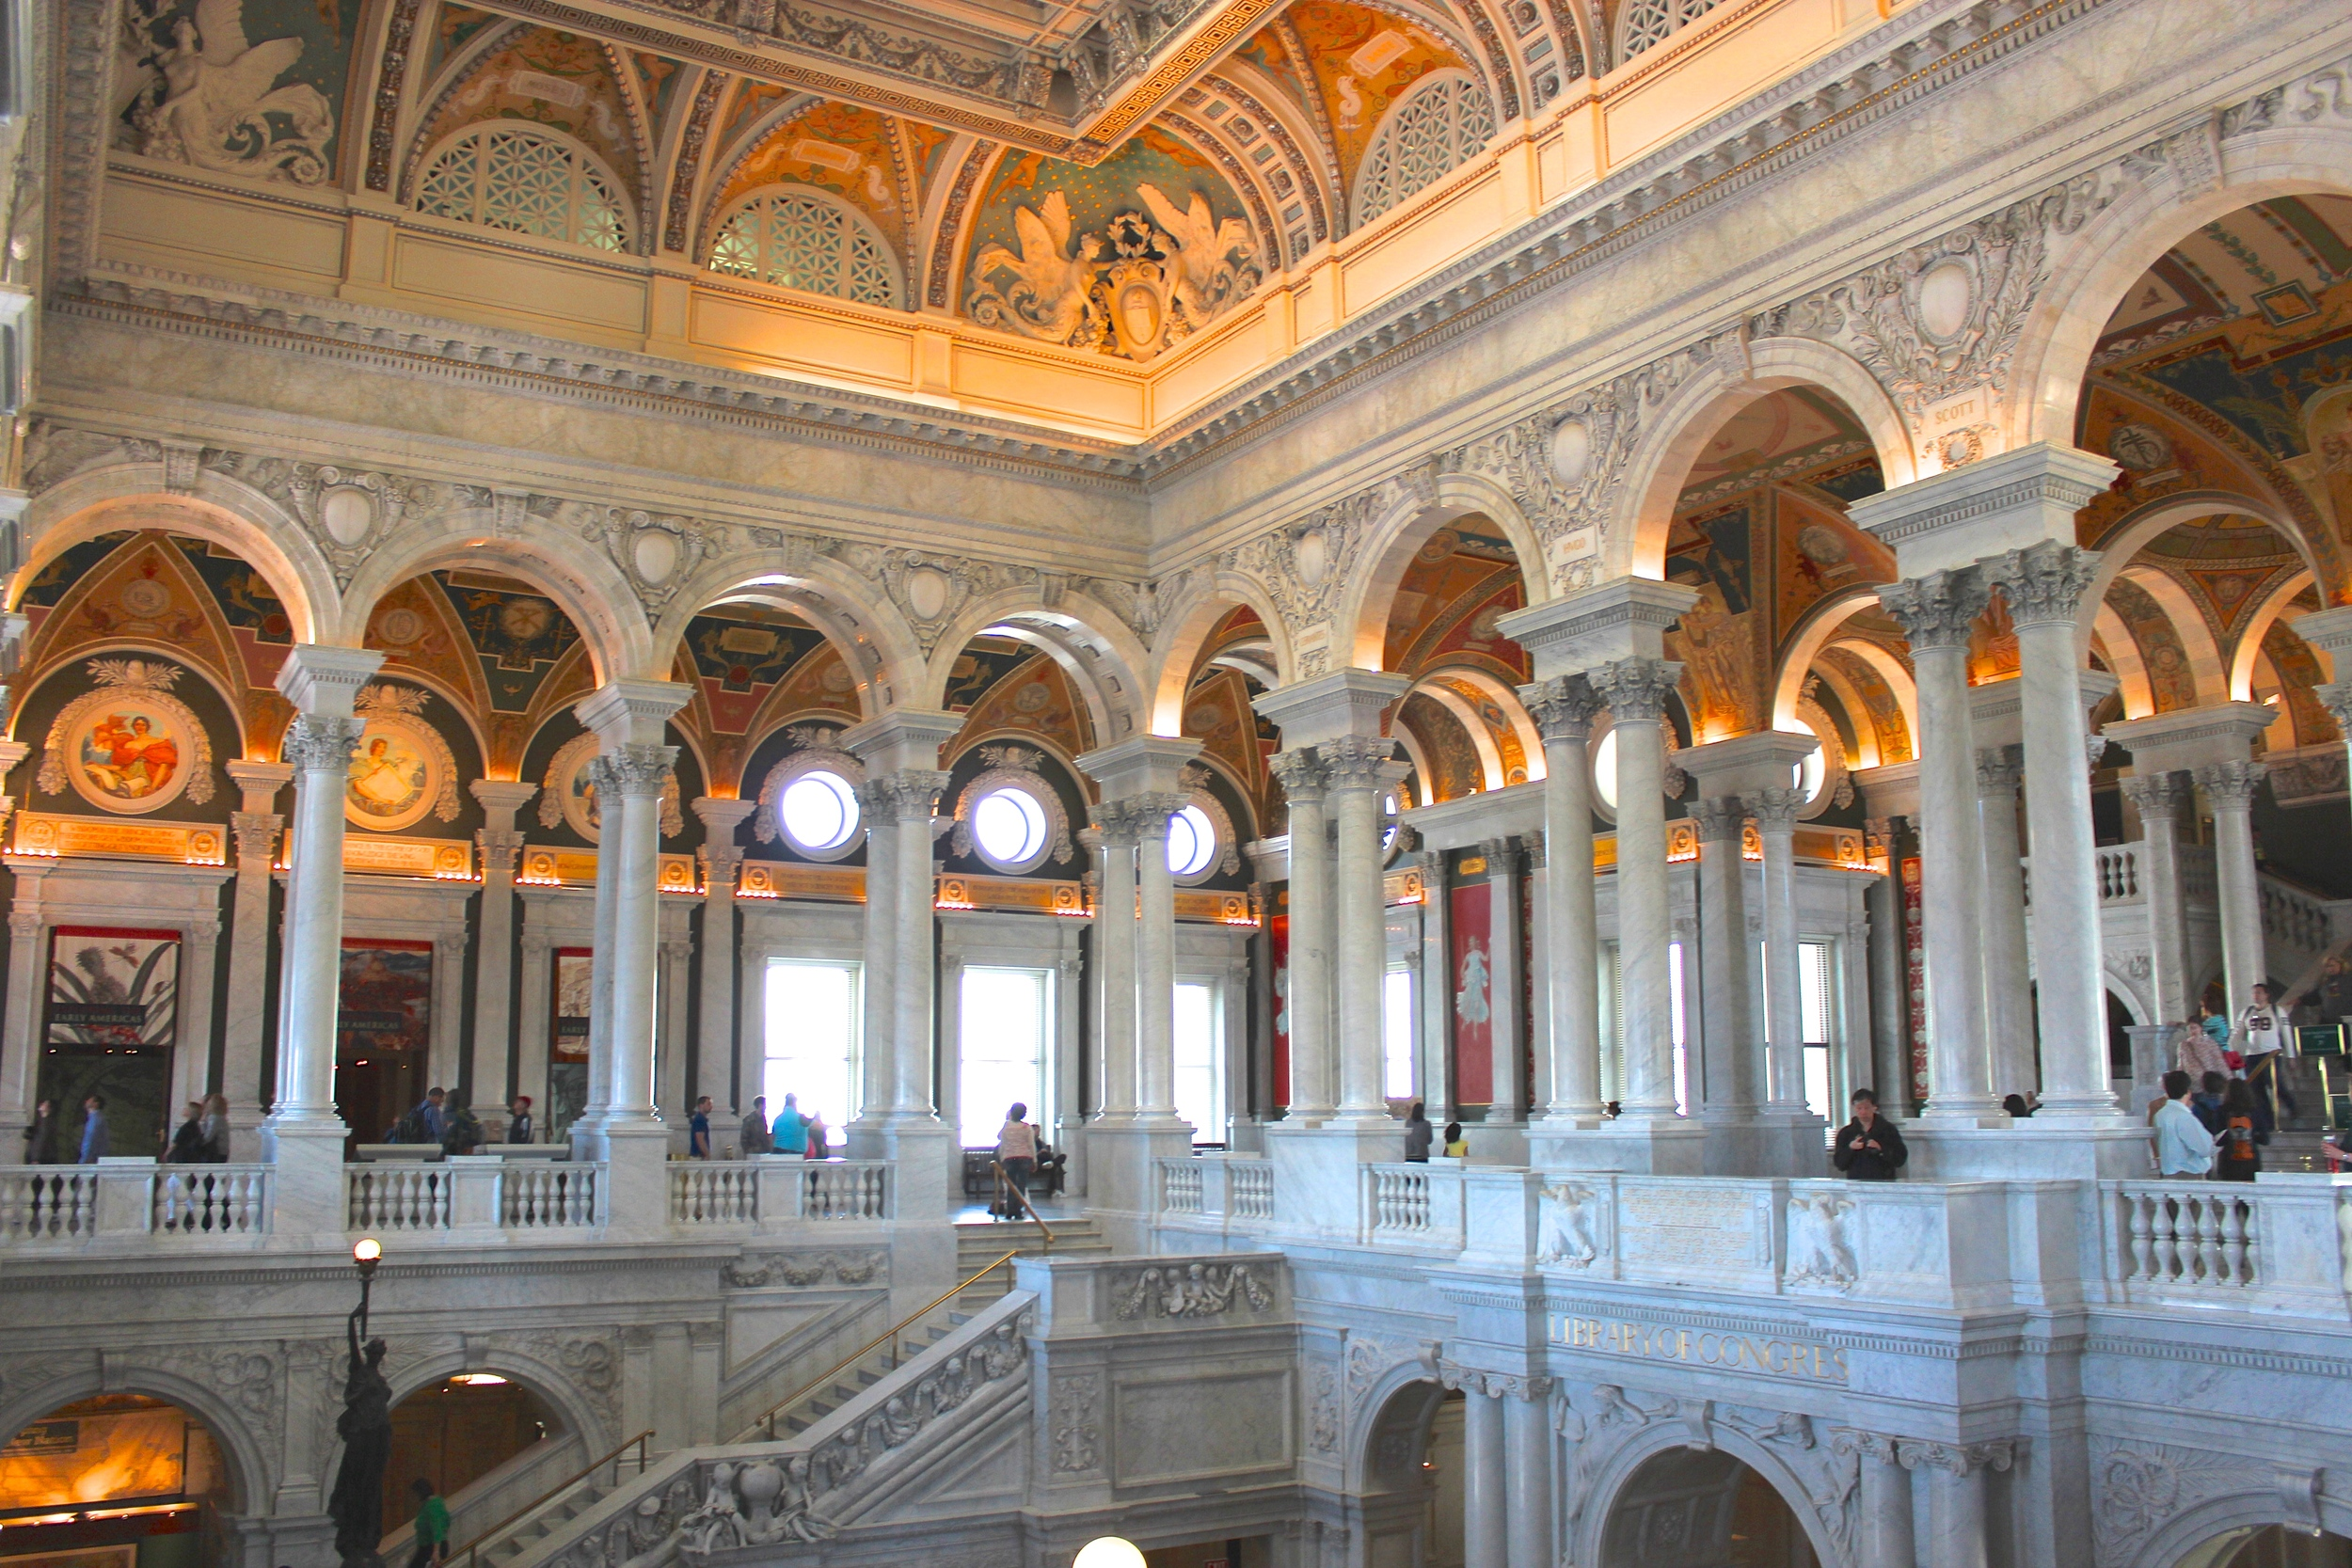 The breathtaking interior of the Library of Congress